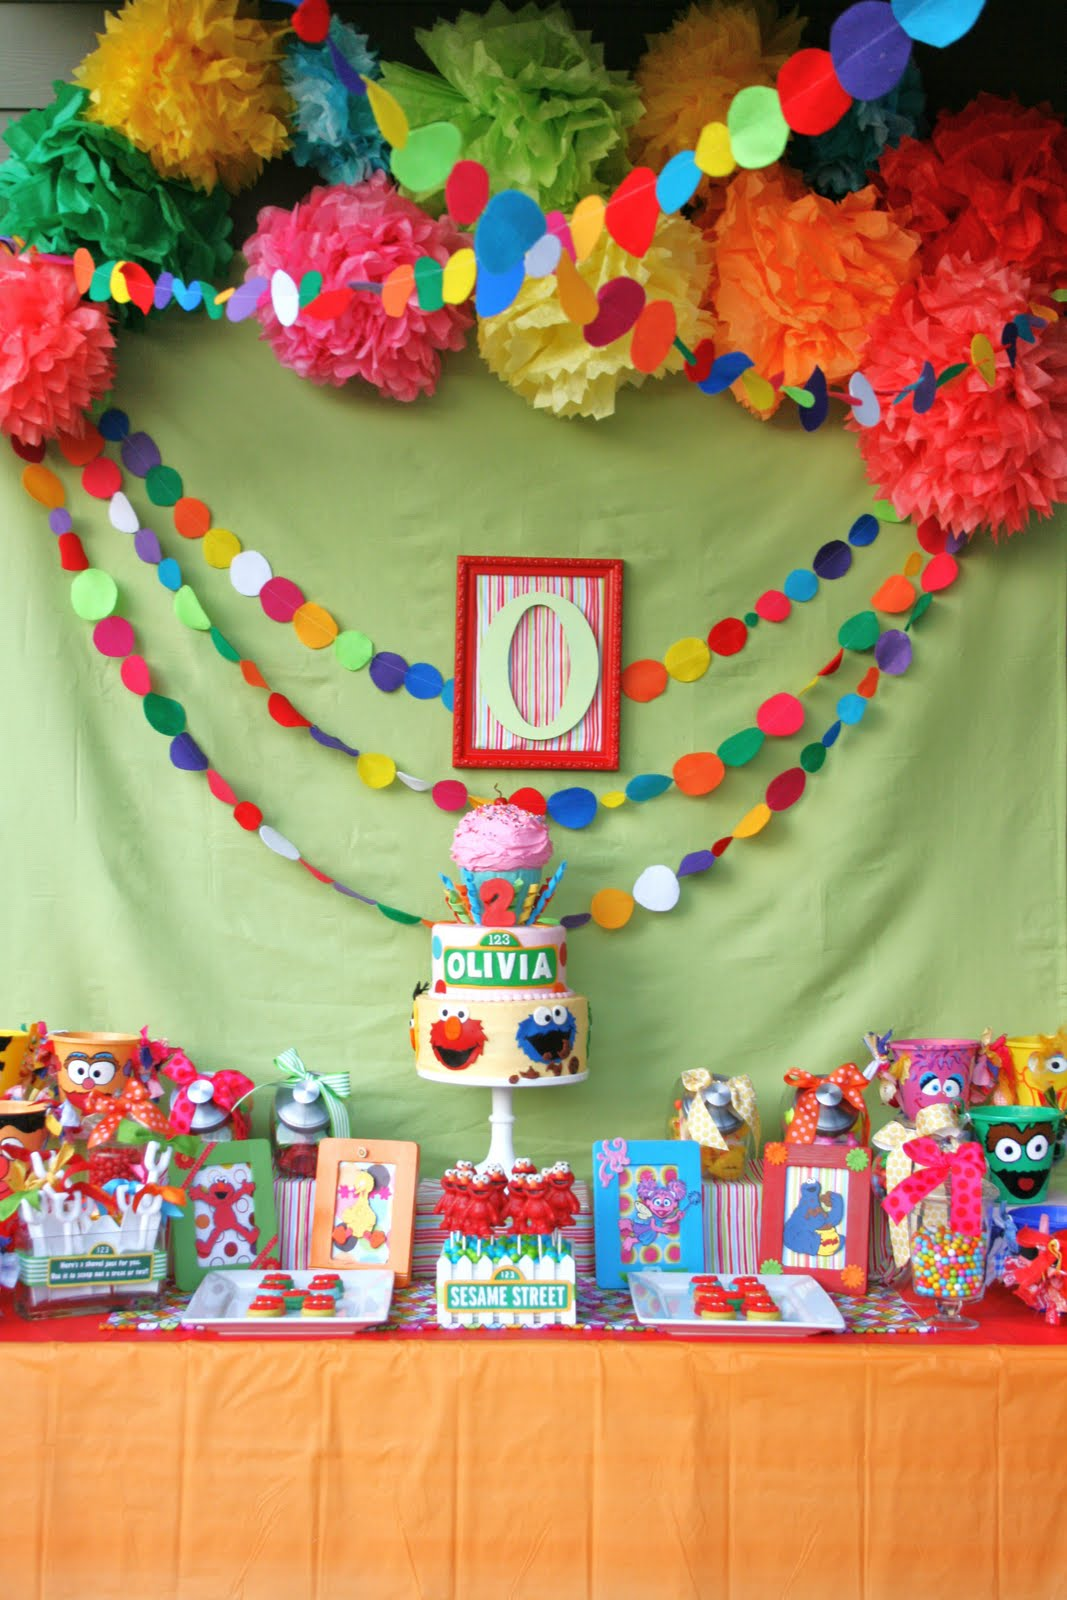 Livies 2nd Birthday Party Was A Success Im Still Exhausted From The Morning But It All So Worth Ill Write More Later For Now Just